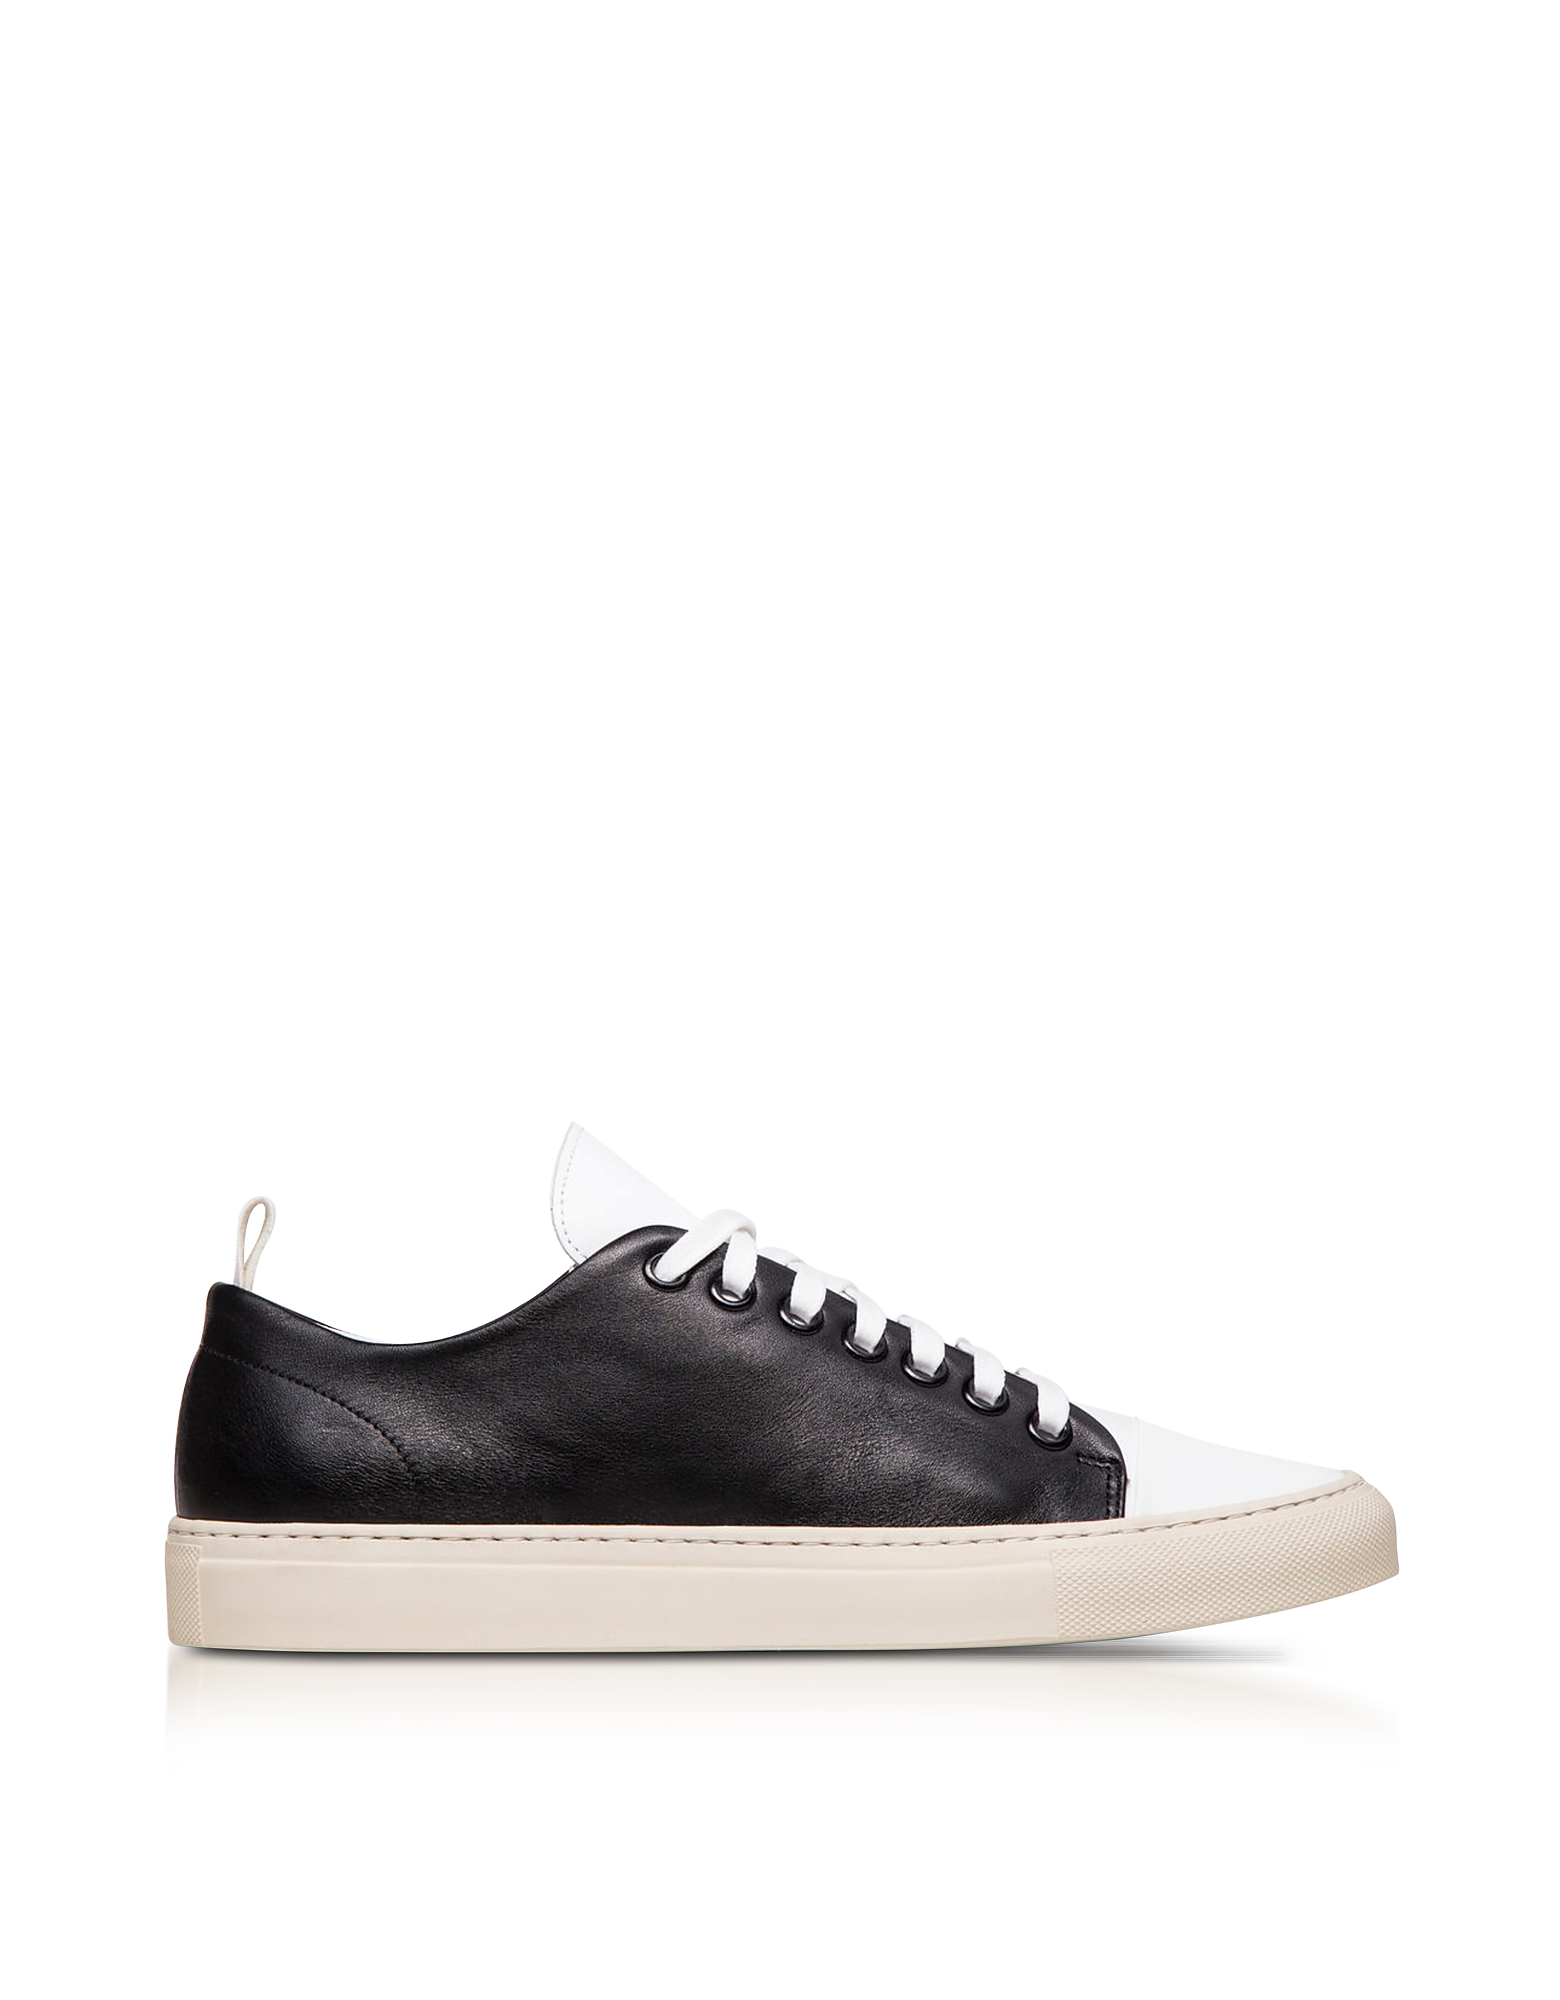 Image of Ylati Designer Shoes, Sorrento Black and White Leather Low Top Men's Sneakers